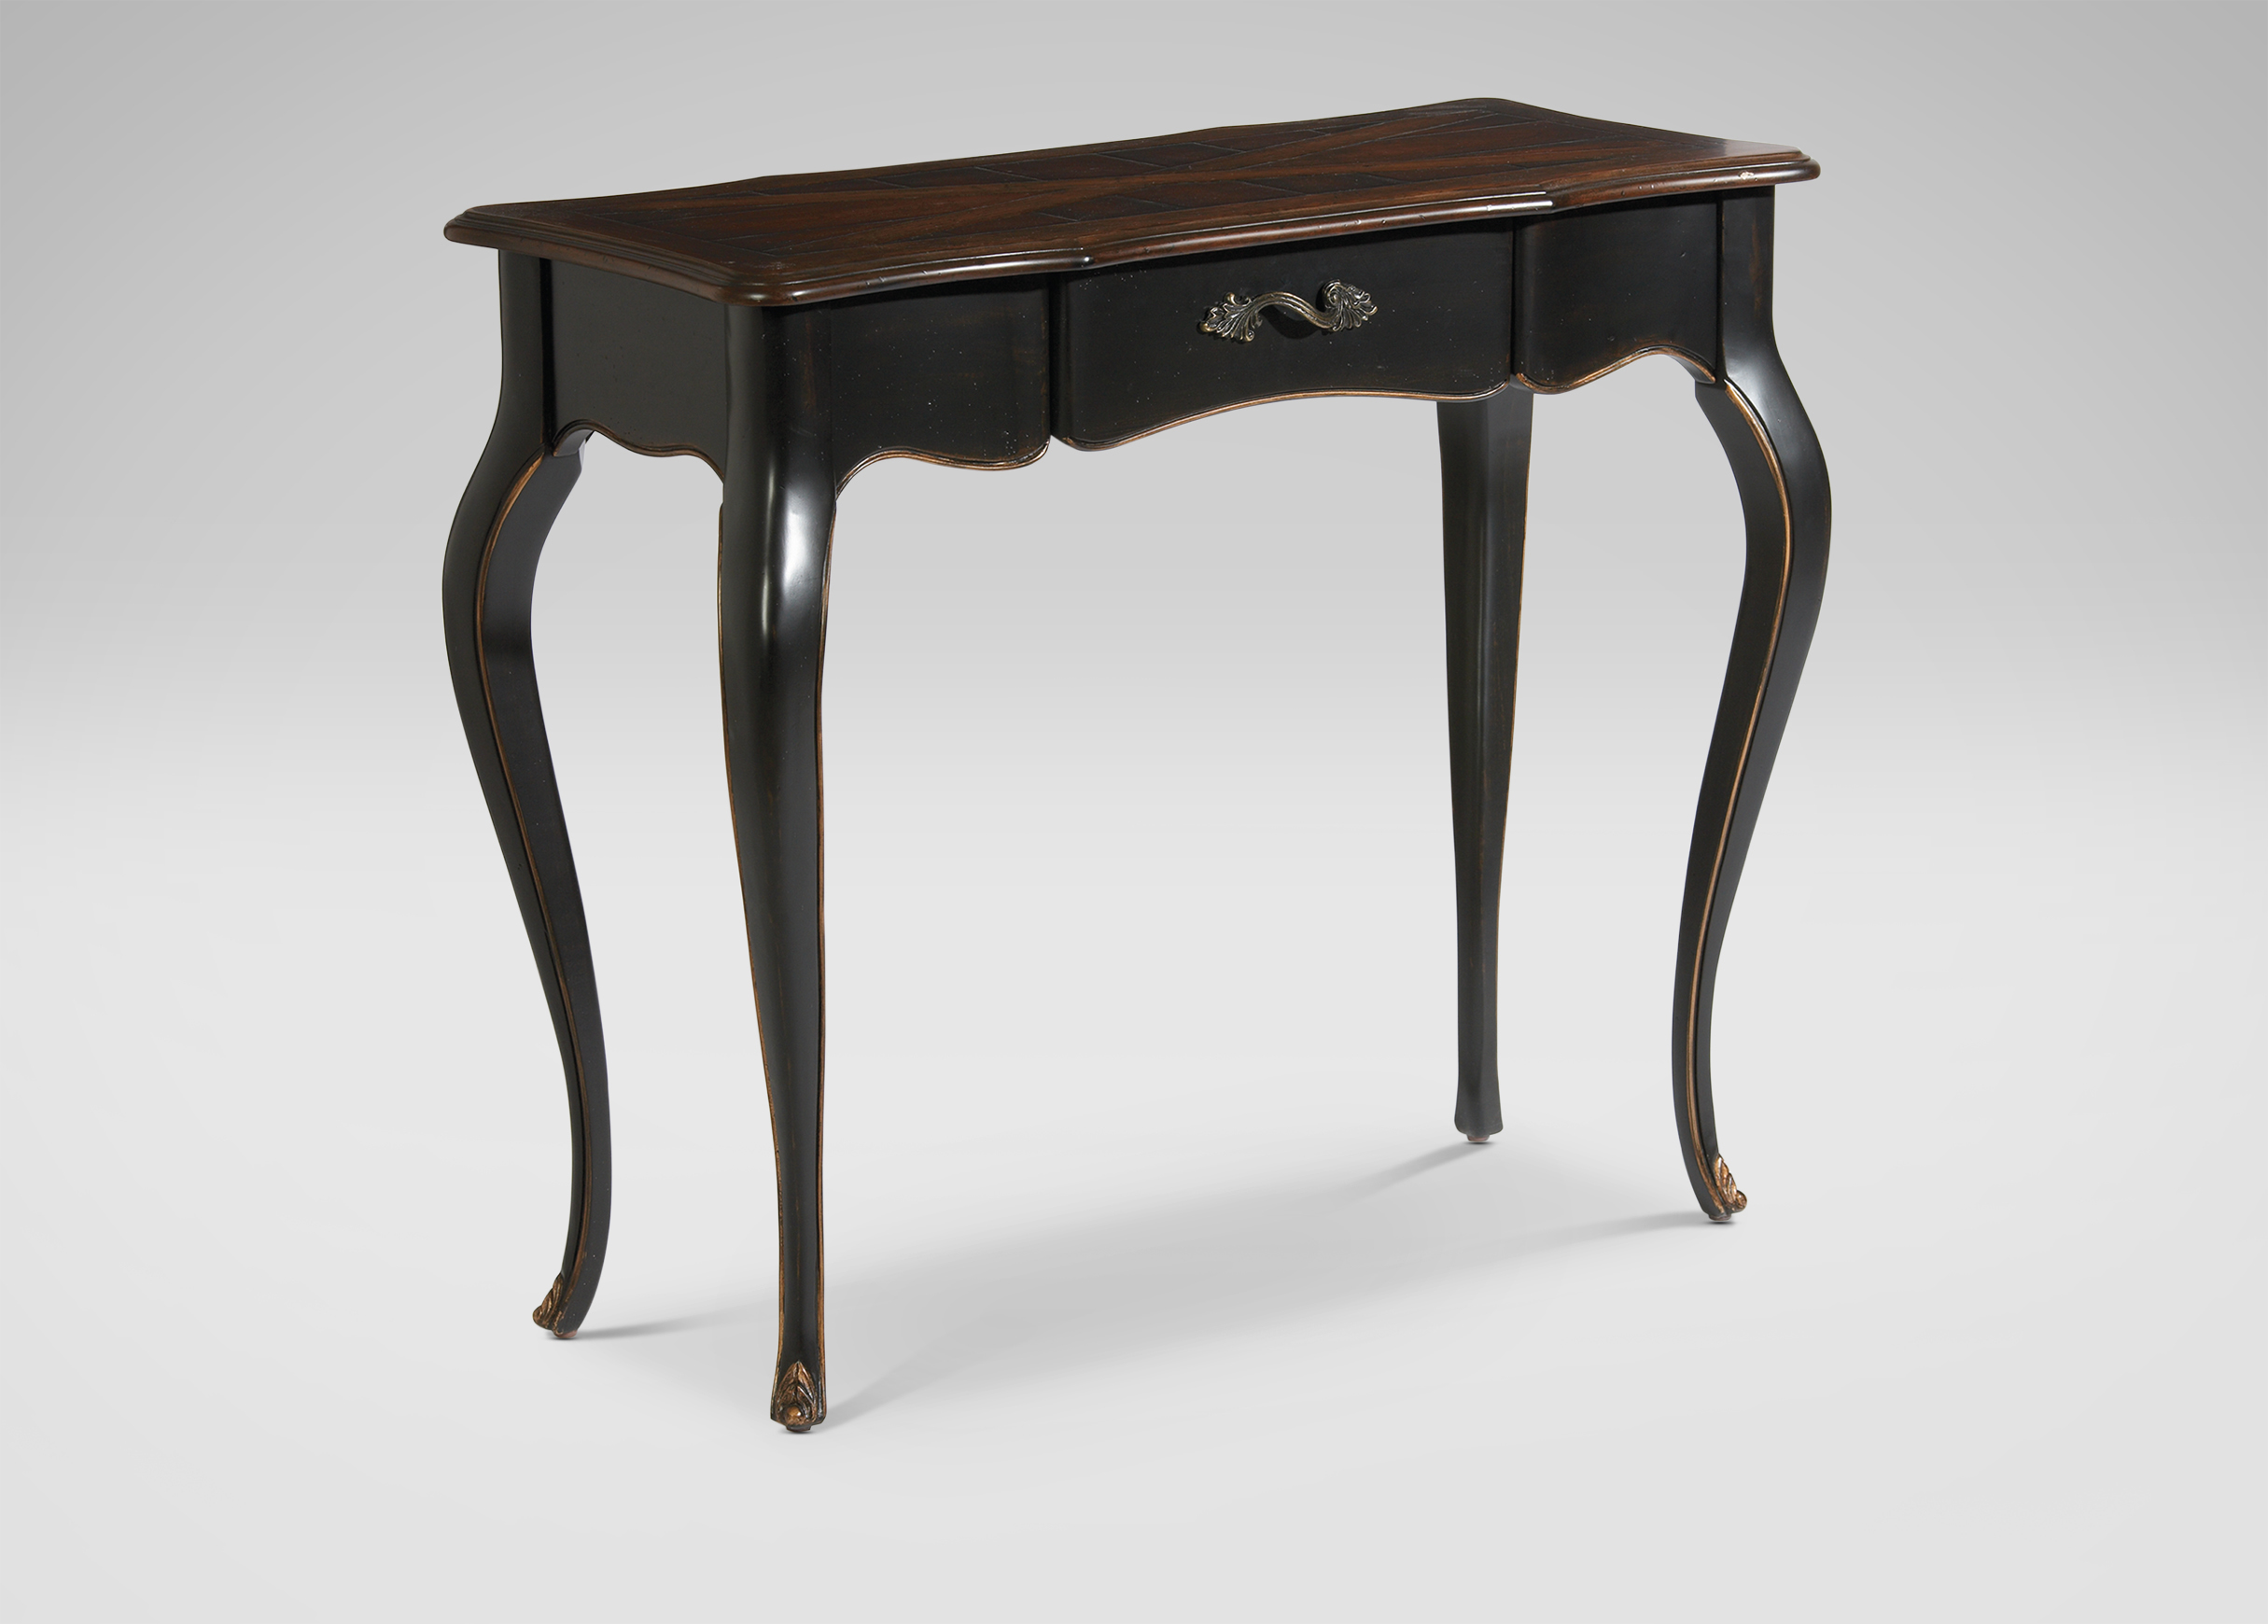 French Console Table french black console table | console tables